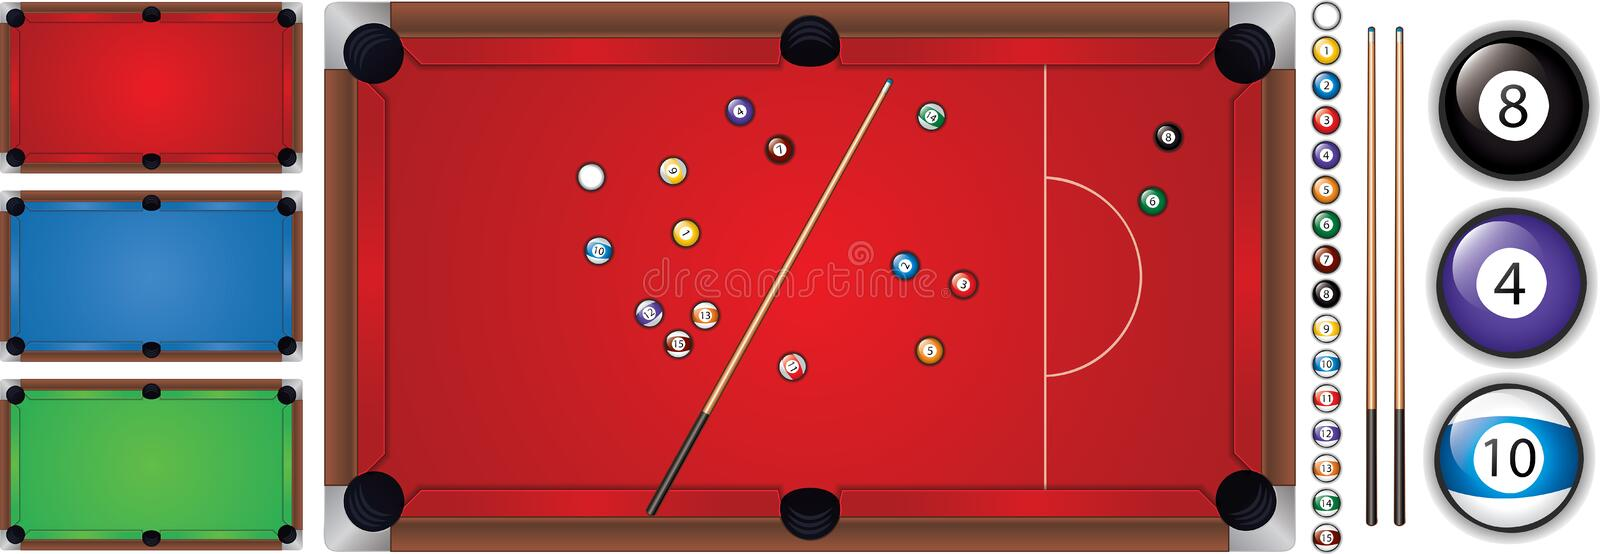 Vector illustration of snooker table with a cue and balls, isolated stock illustration